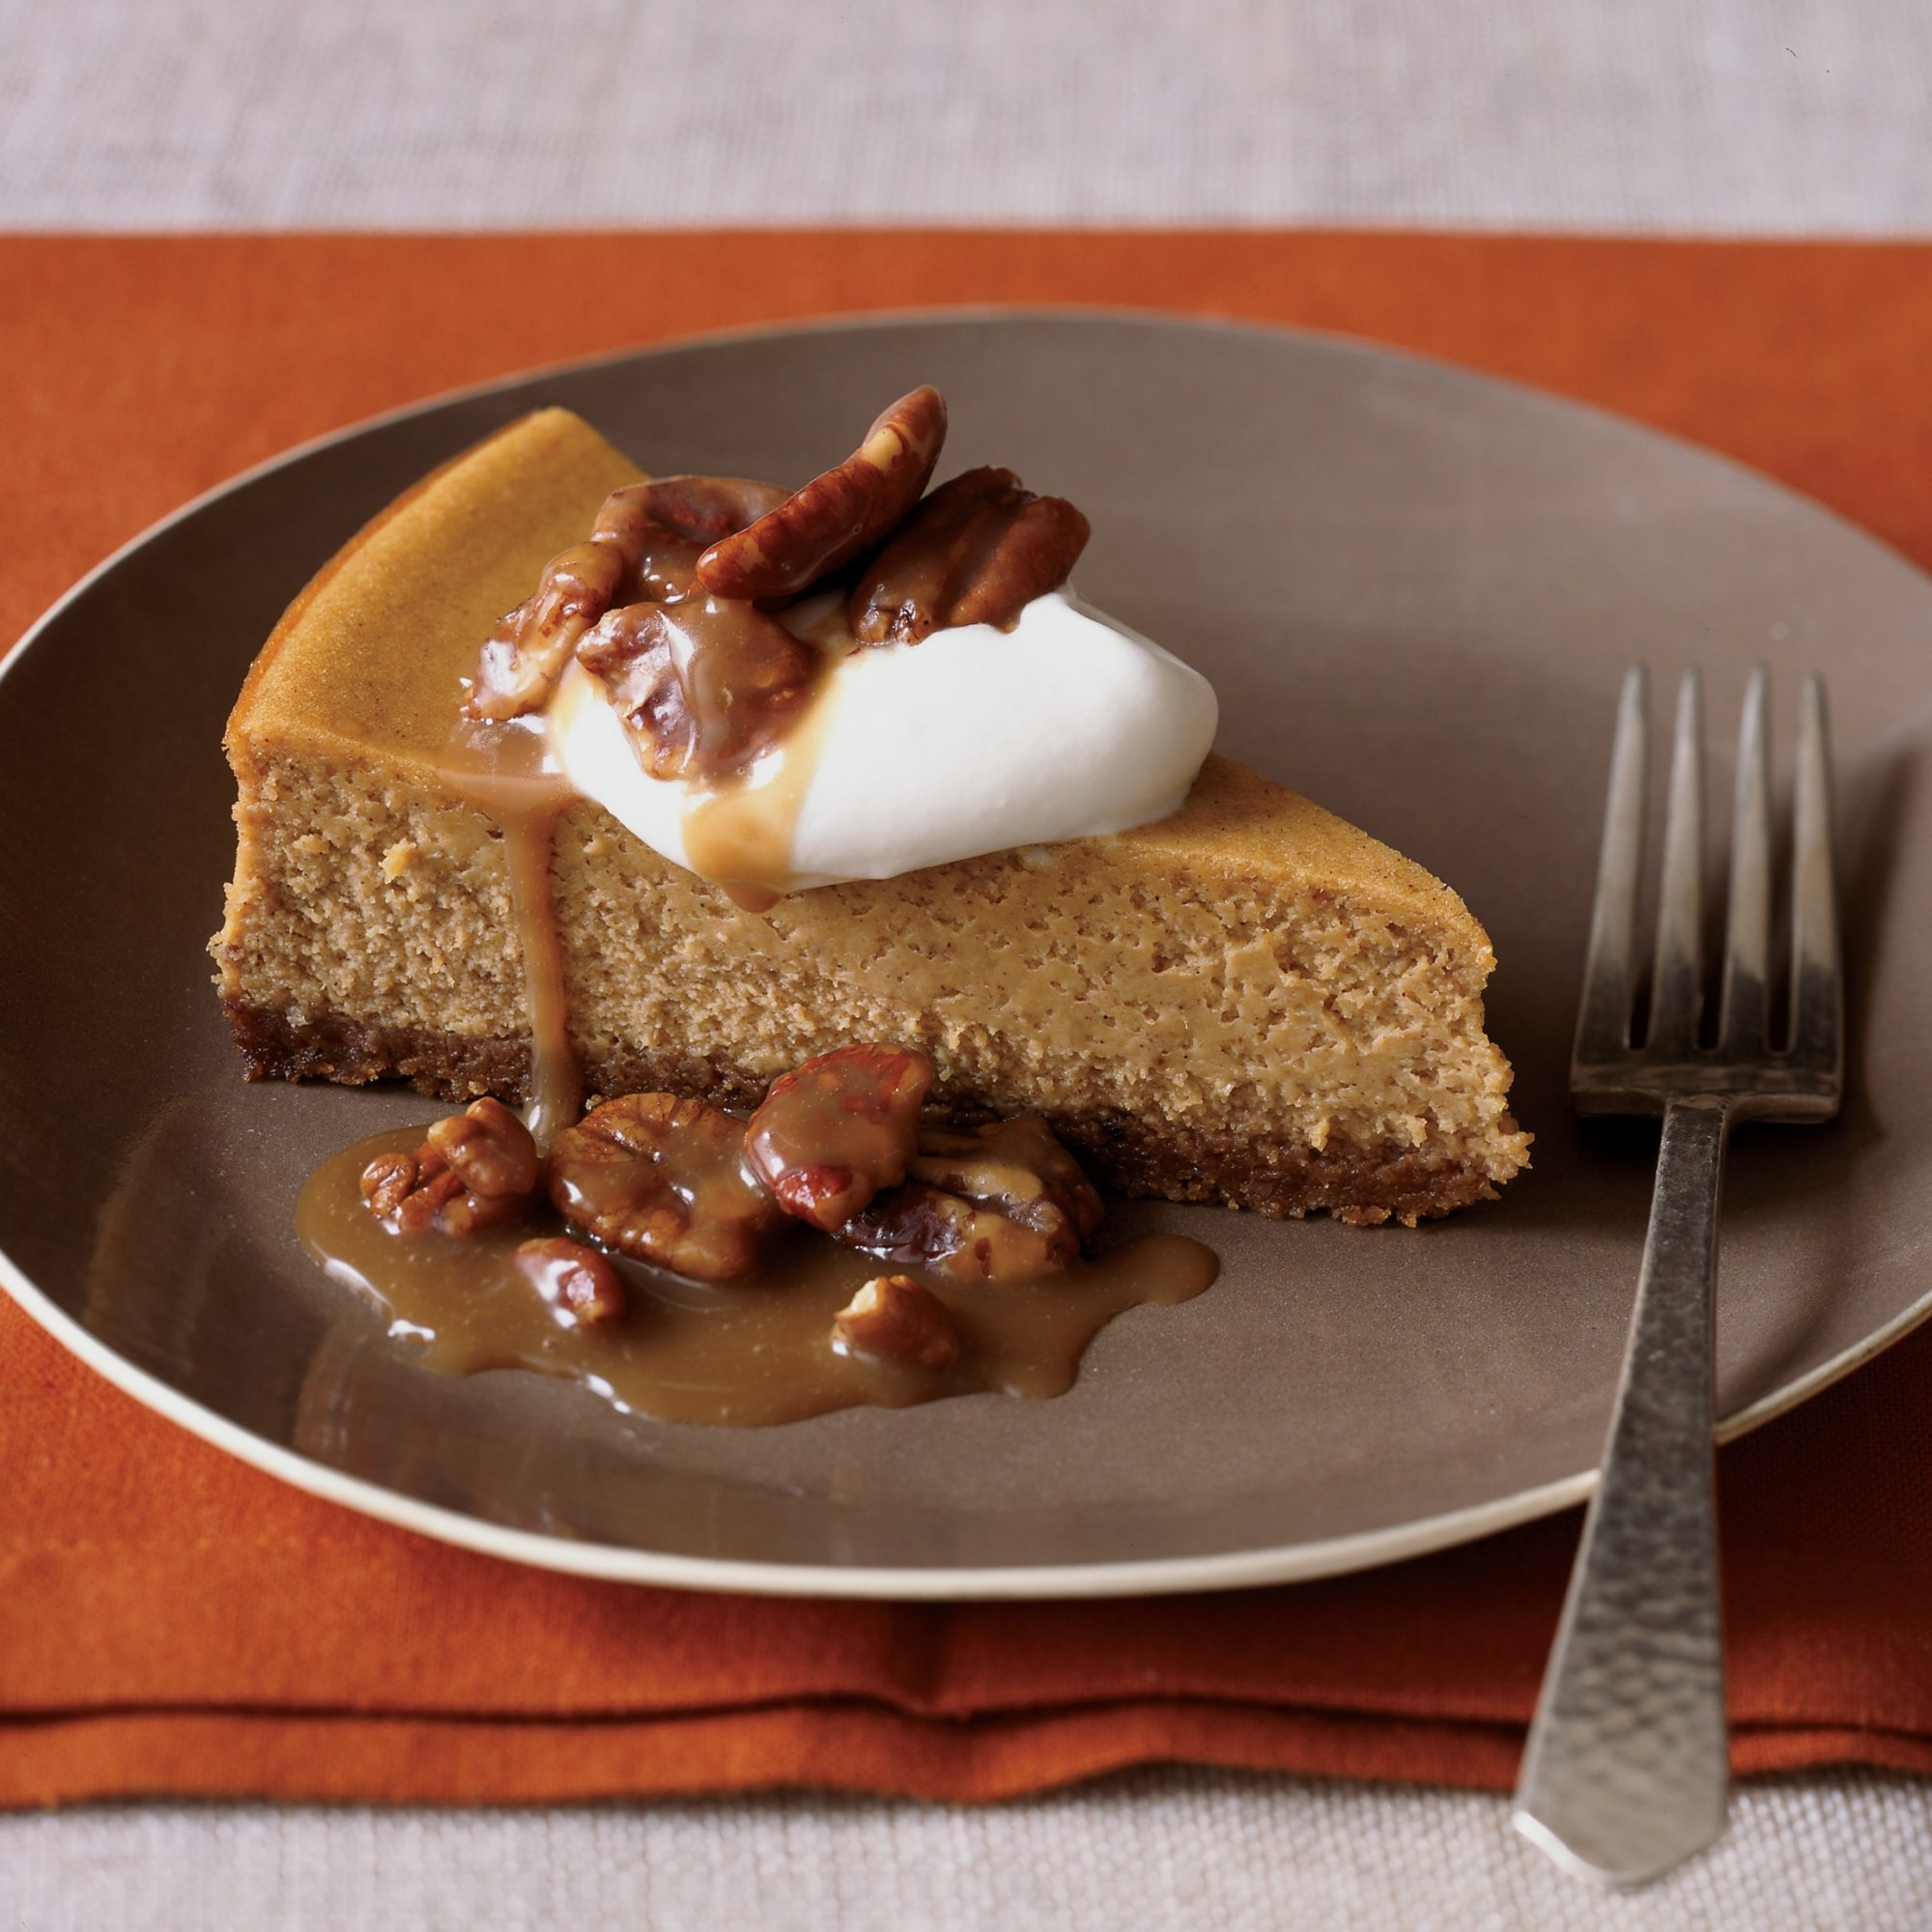 Pumpkin Cheesecake with Pecan Praline Topping